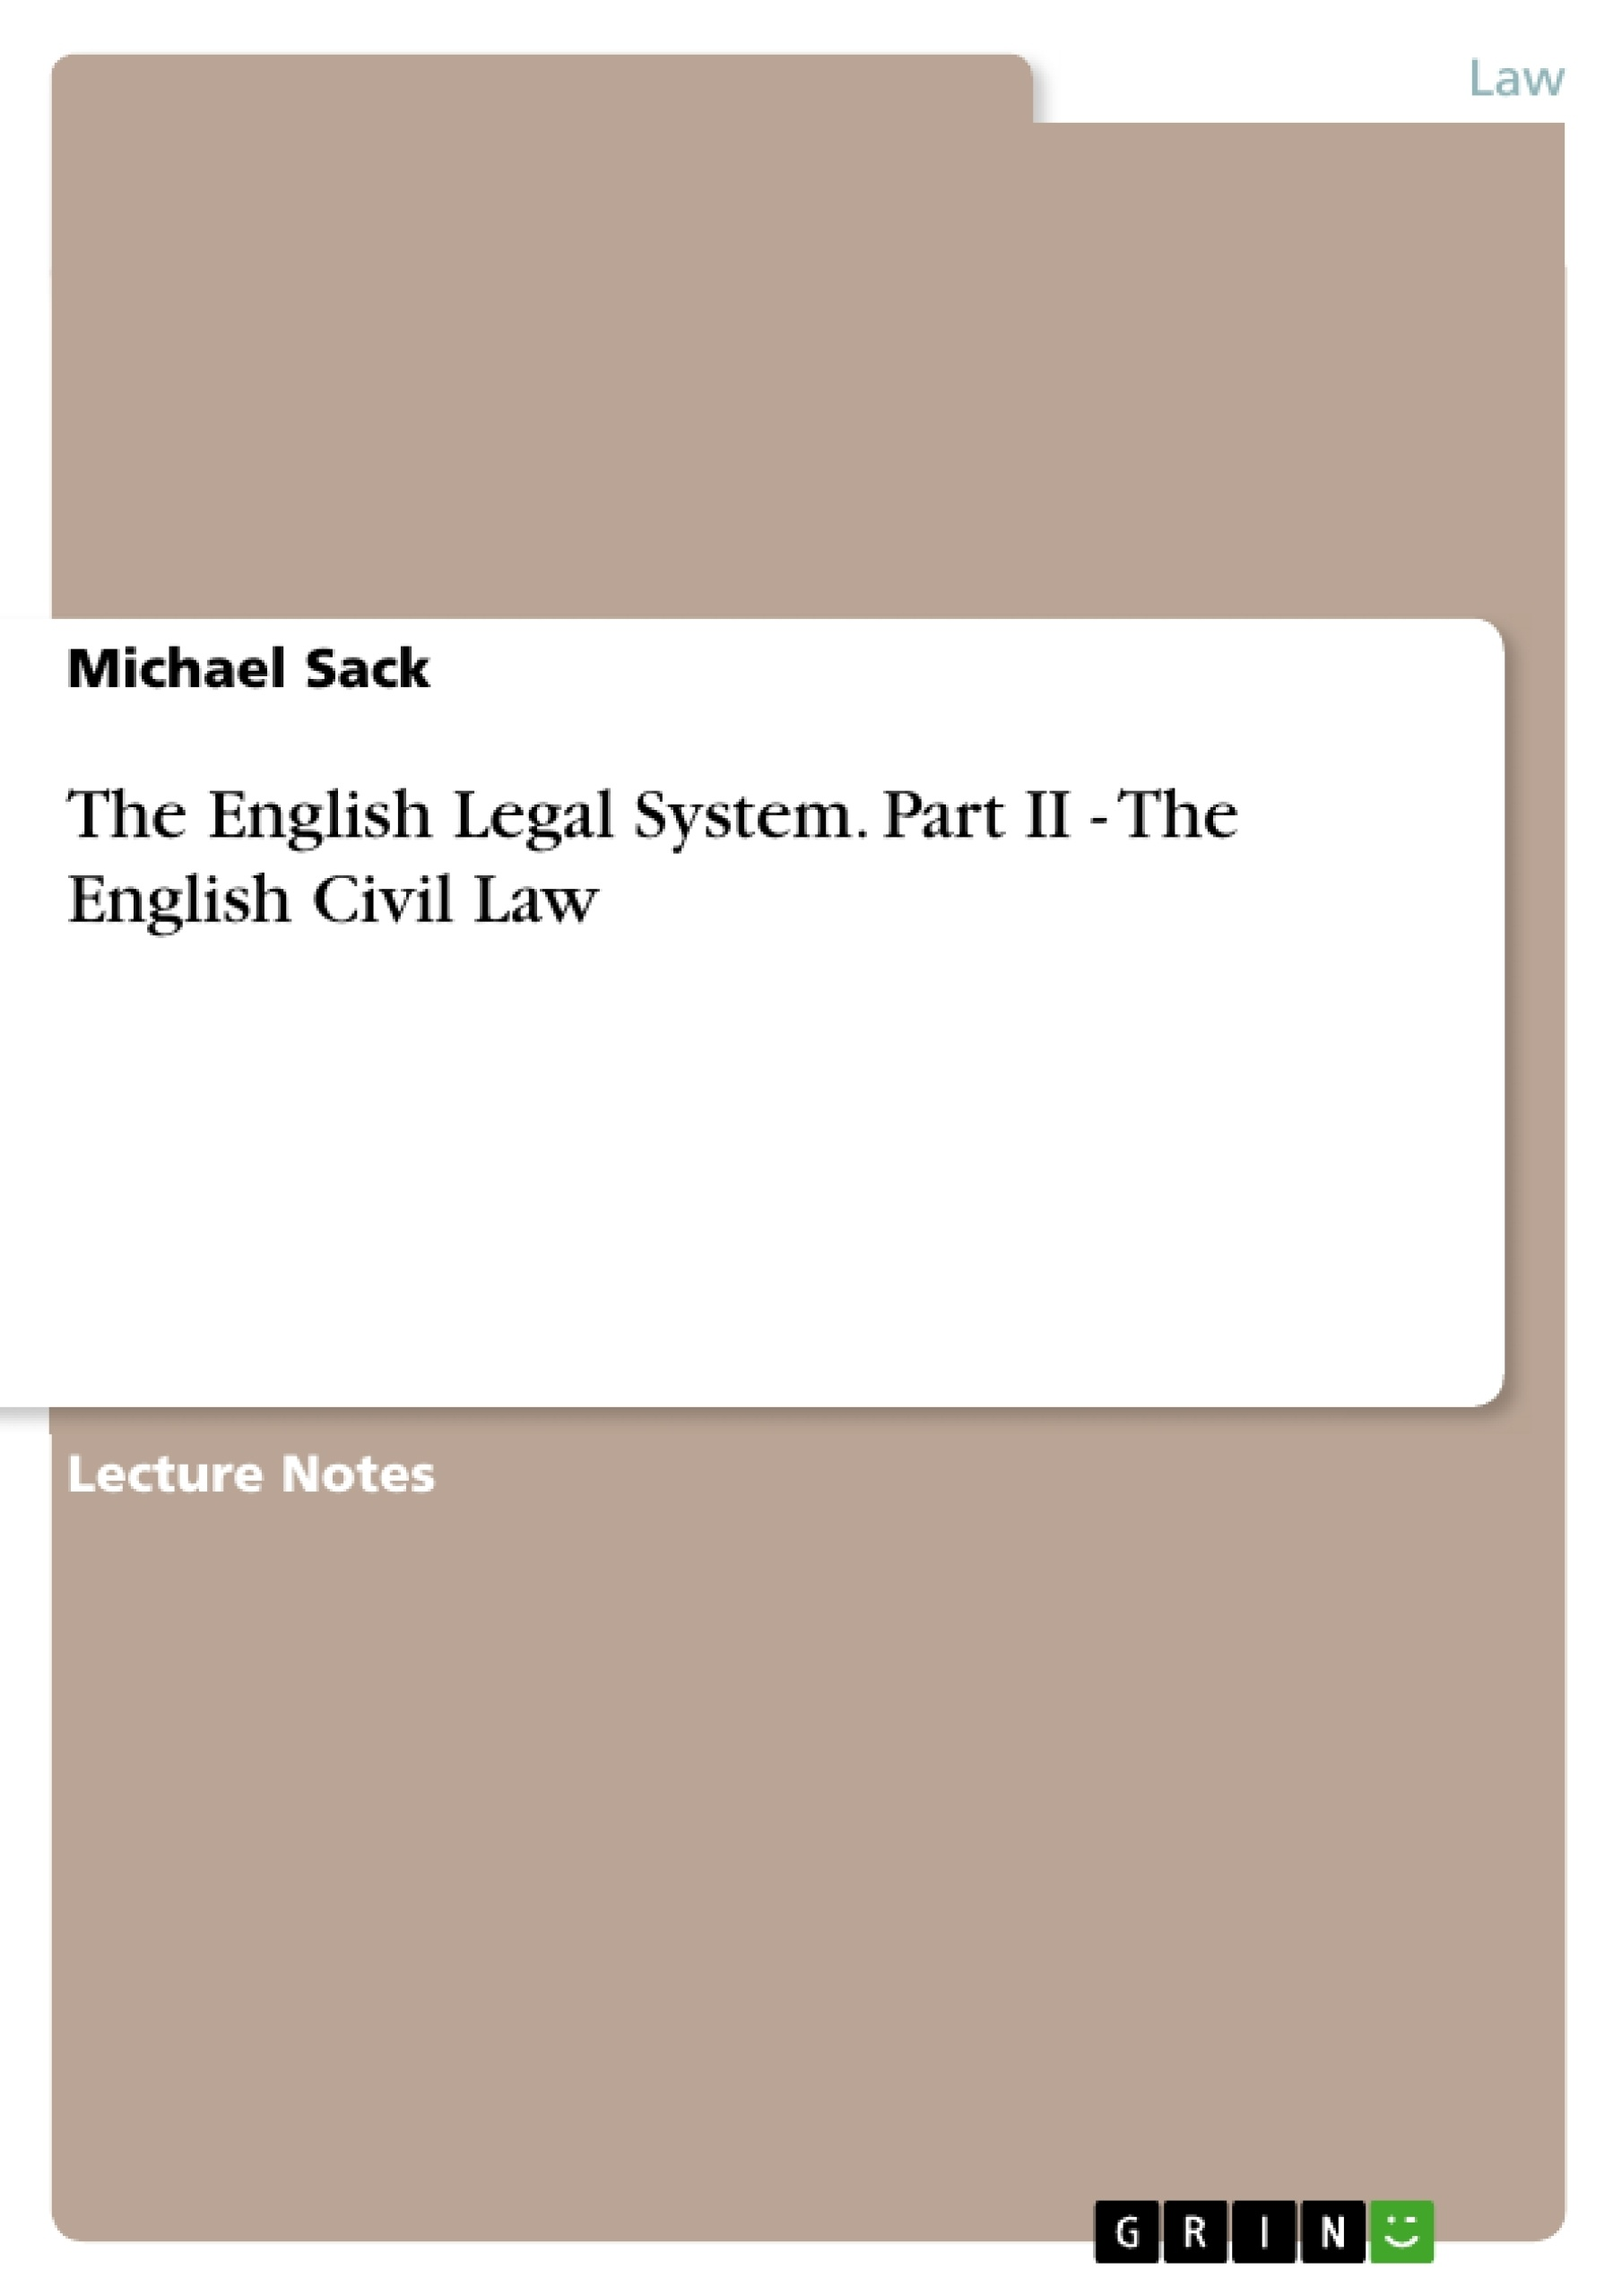 Title: The English Legal System. Part II - The English Civil Law